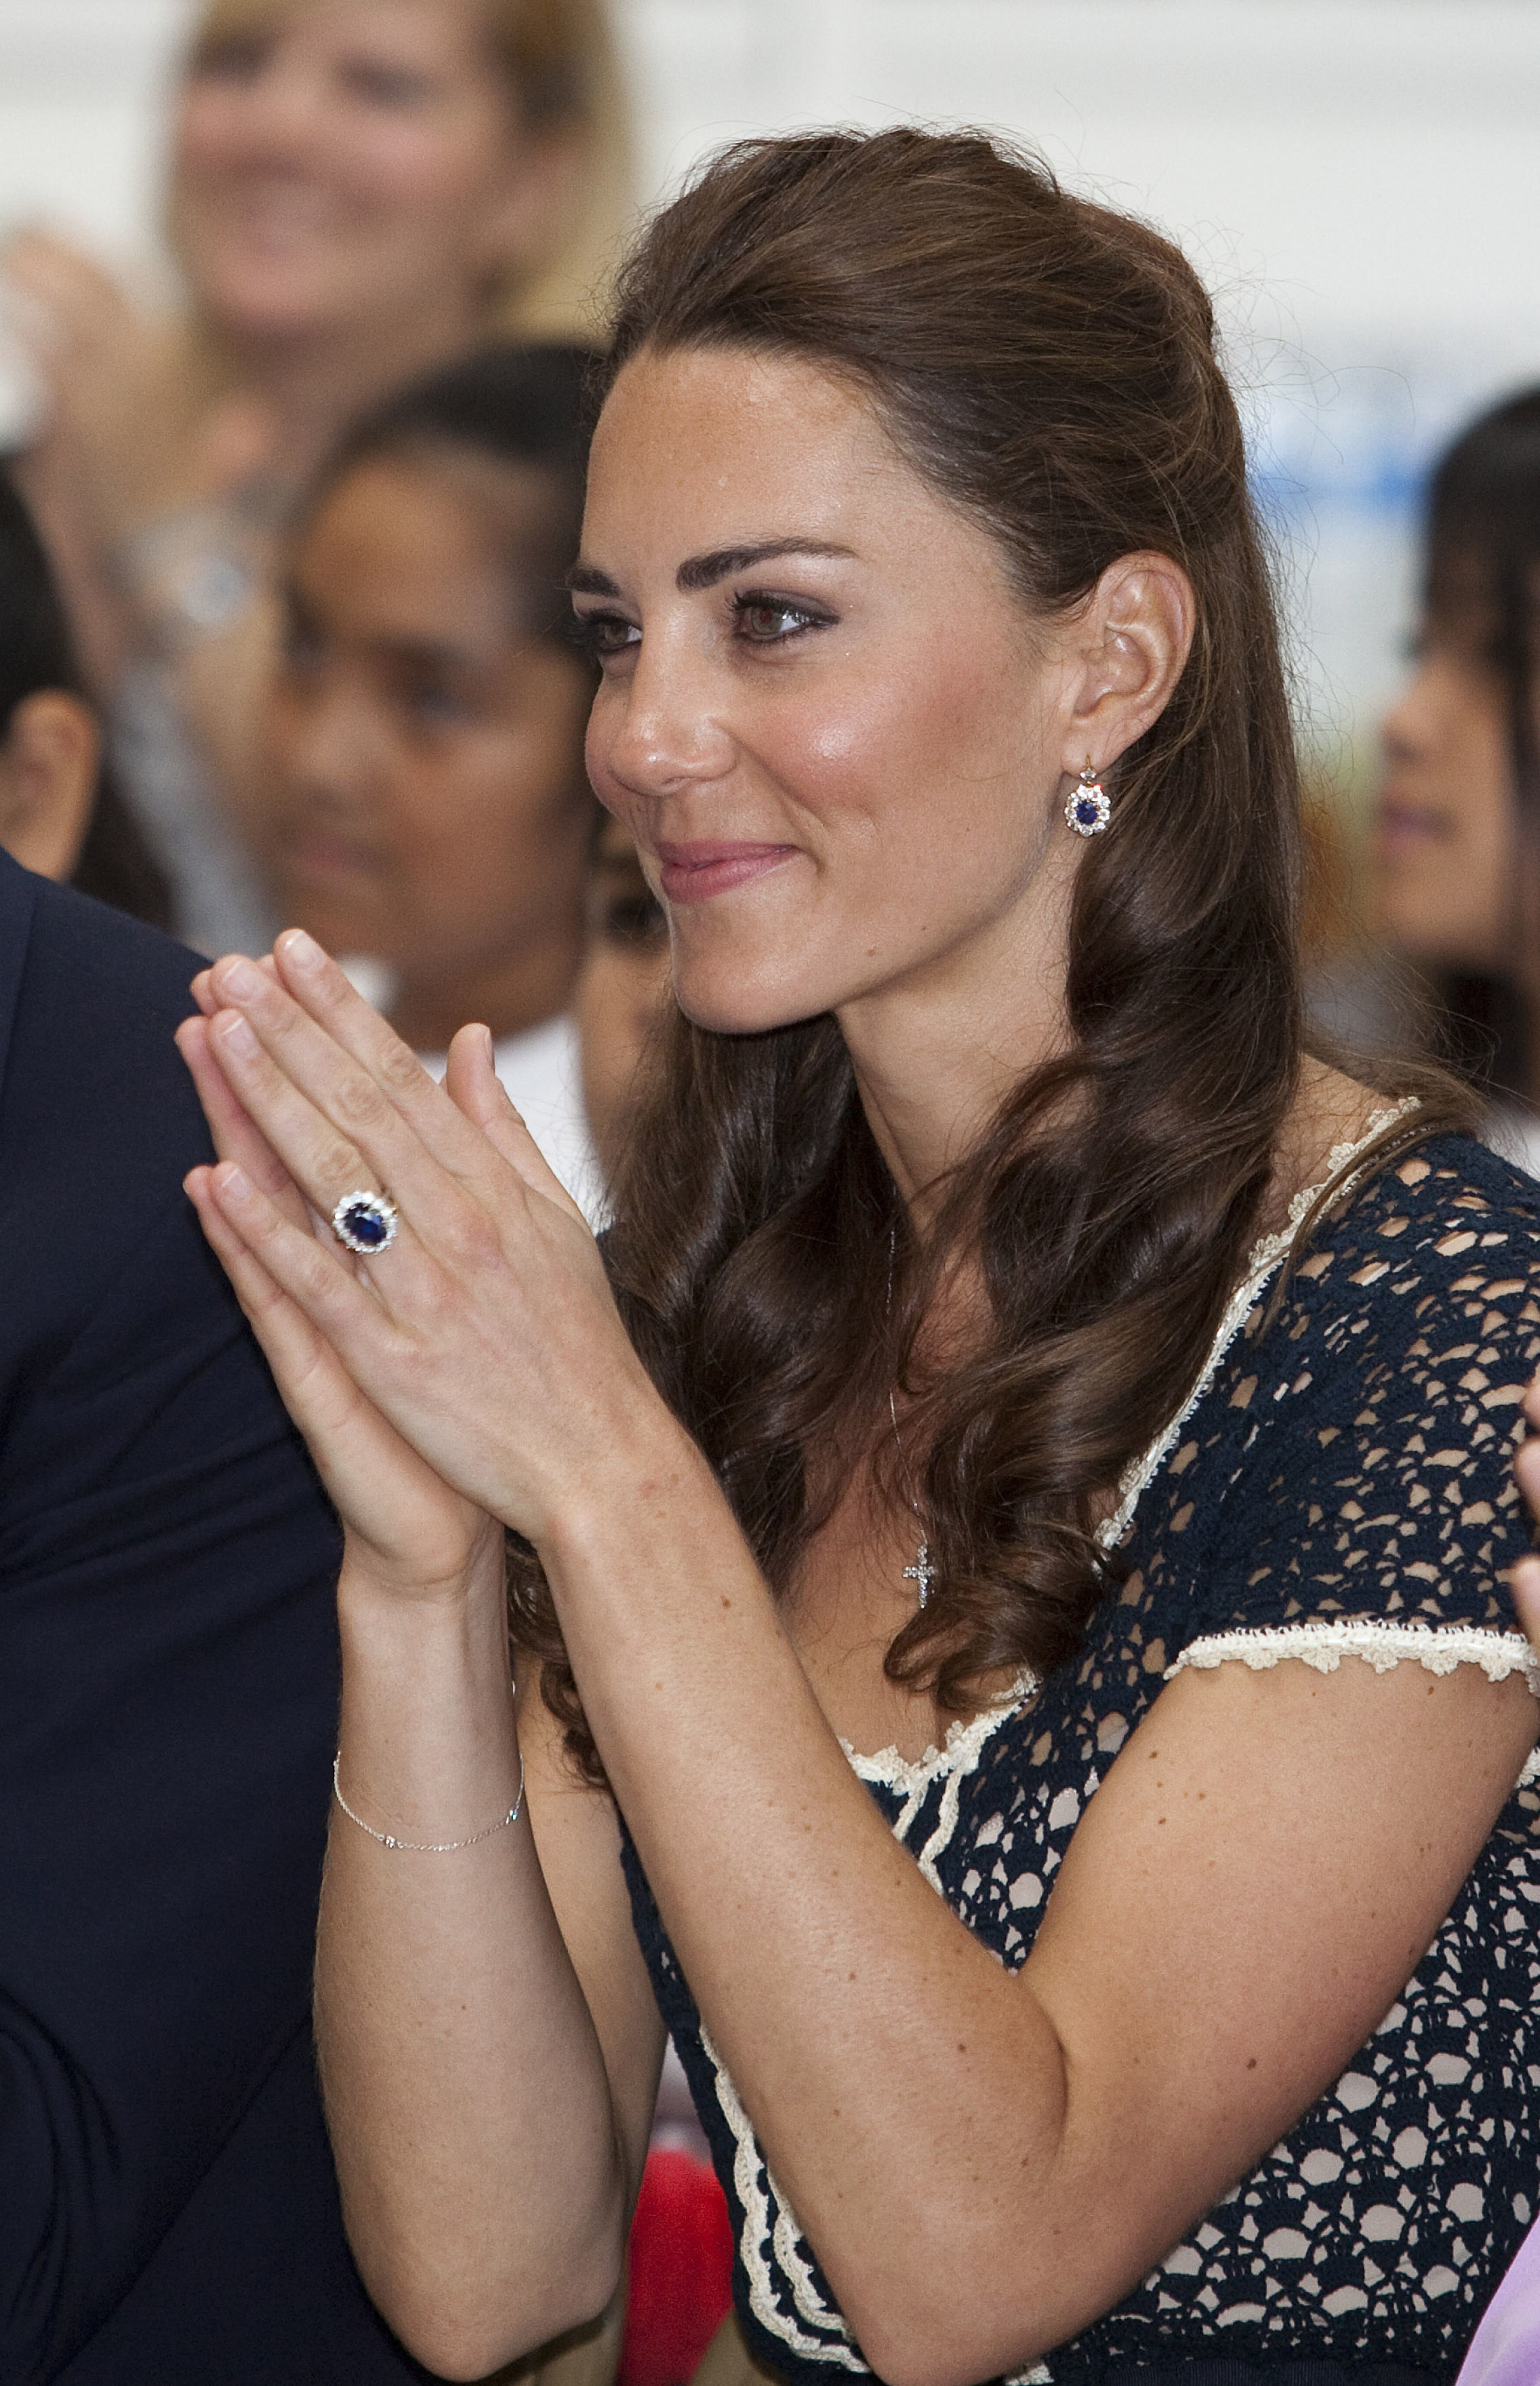 Duchess Kate's jewelry collection: The most memorable jewels